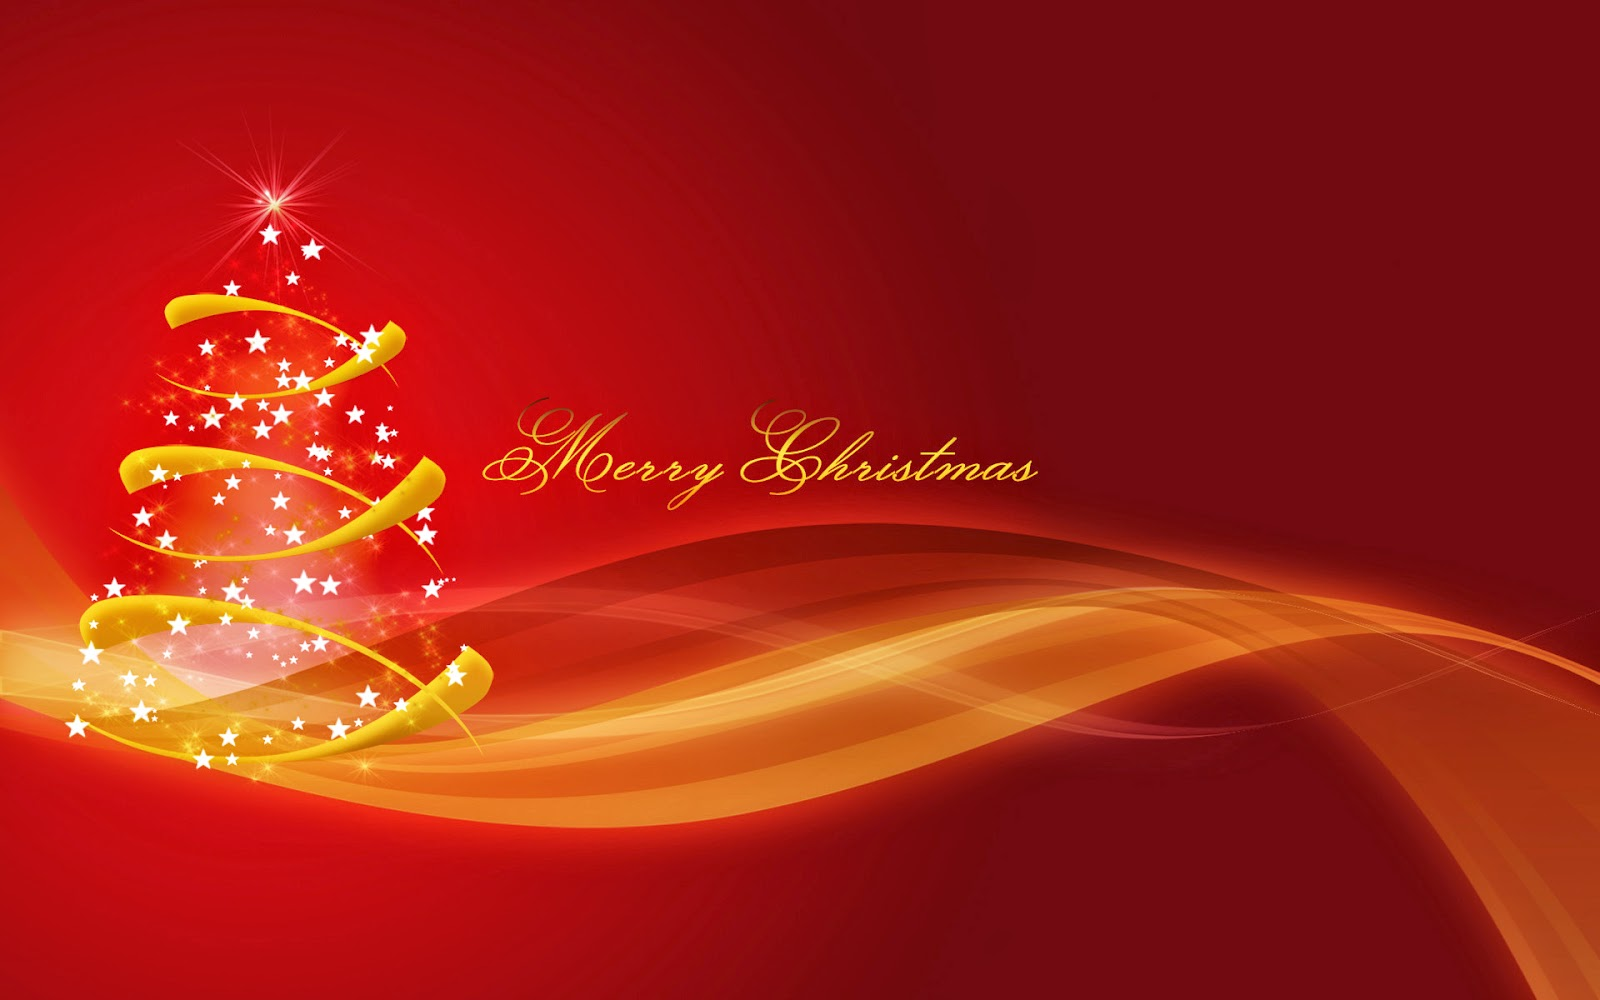 merry-christmas-texted-xmas-tree-vector-design-hd-image.jpg